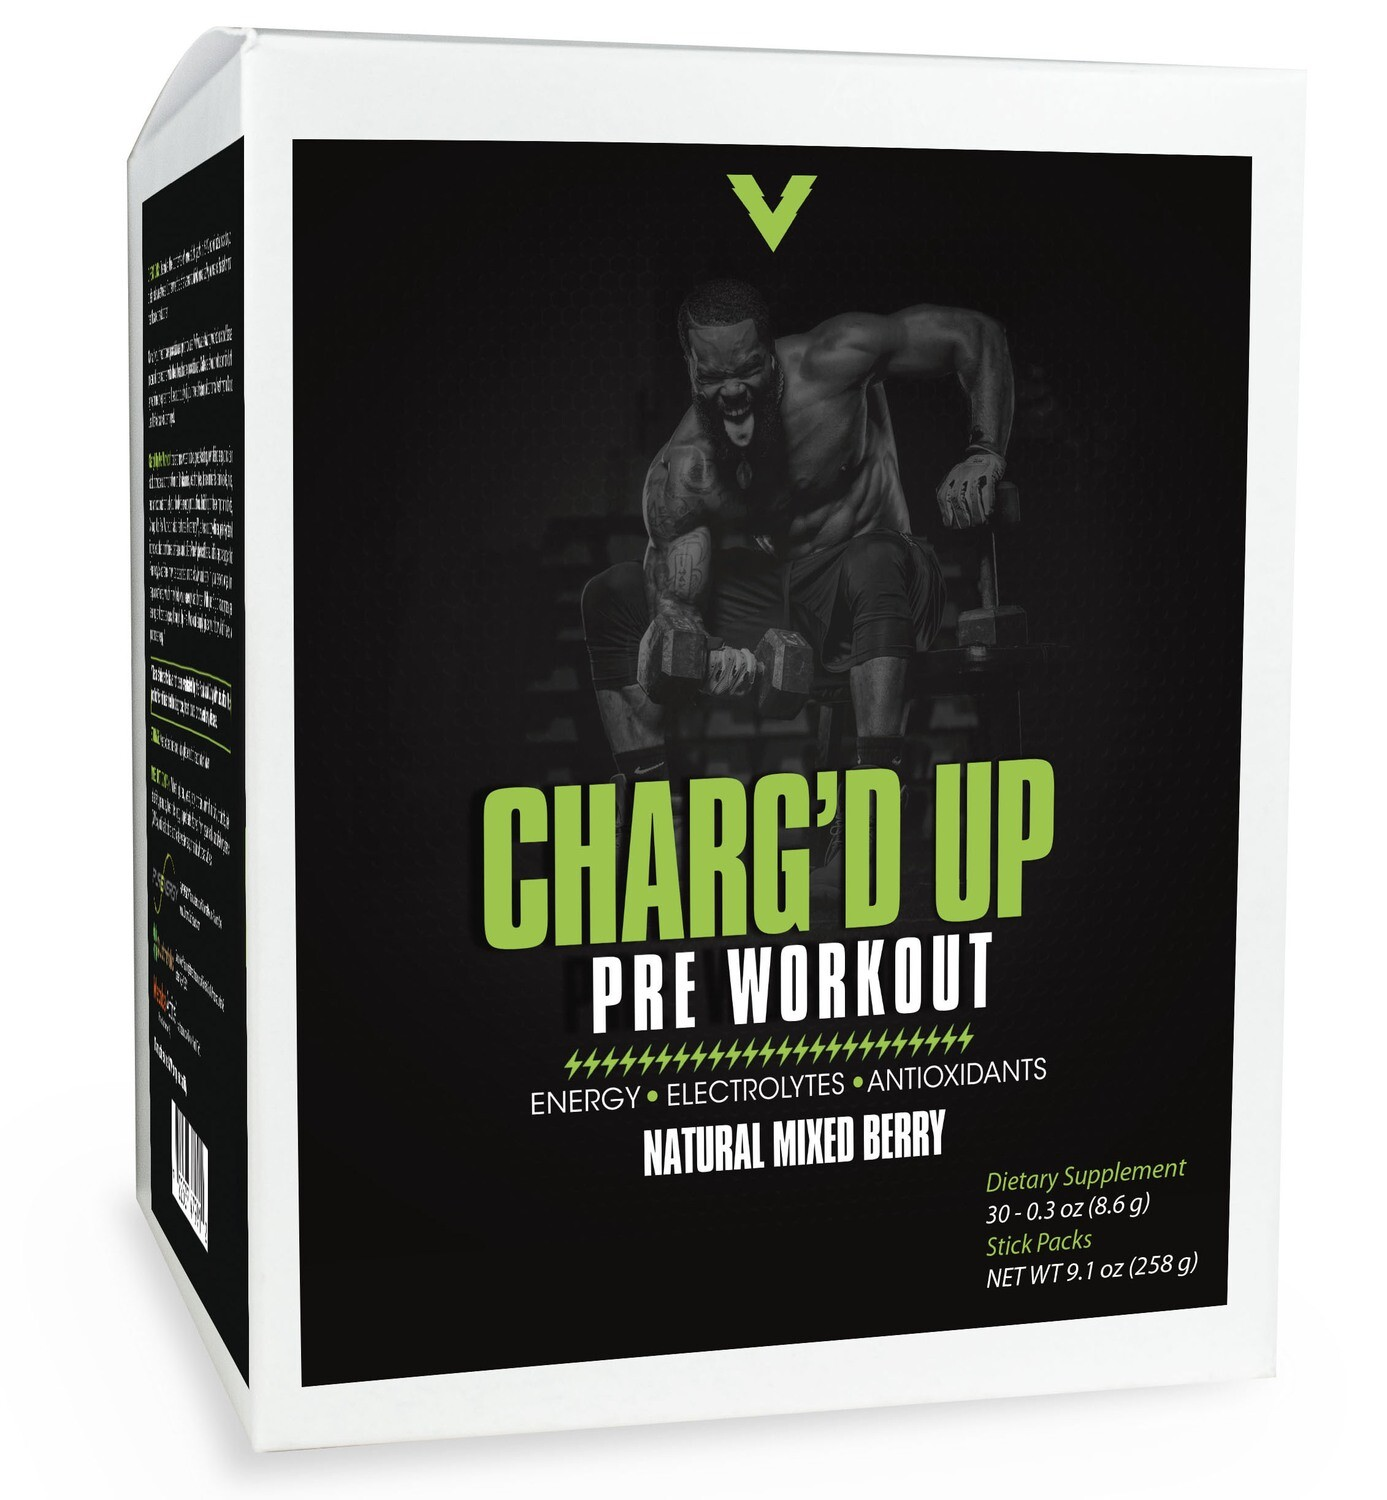 Charg'd Up Pre-Workout (Natural Mixed Berry Flavor) - 30 - 0.3 oz singles